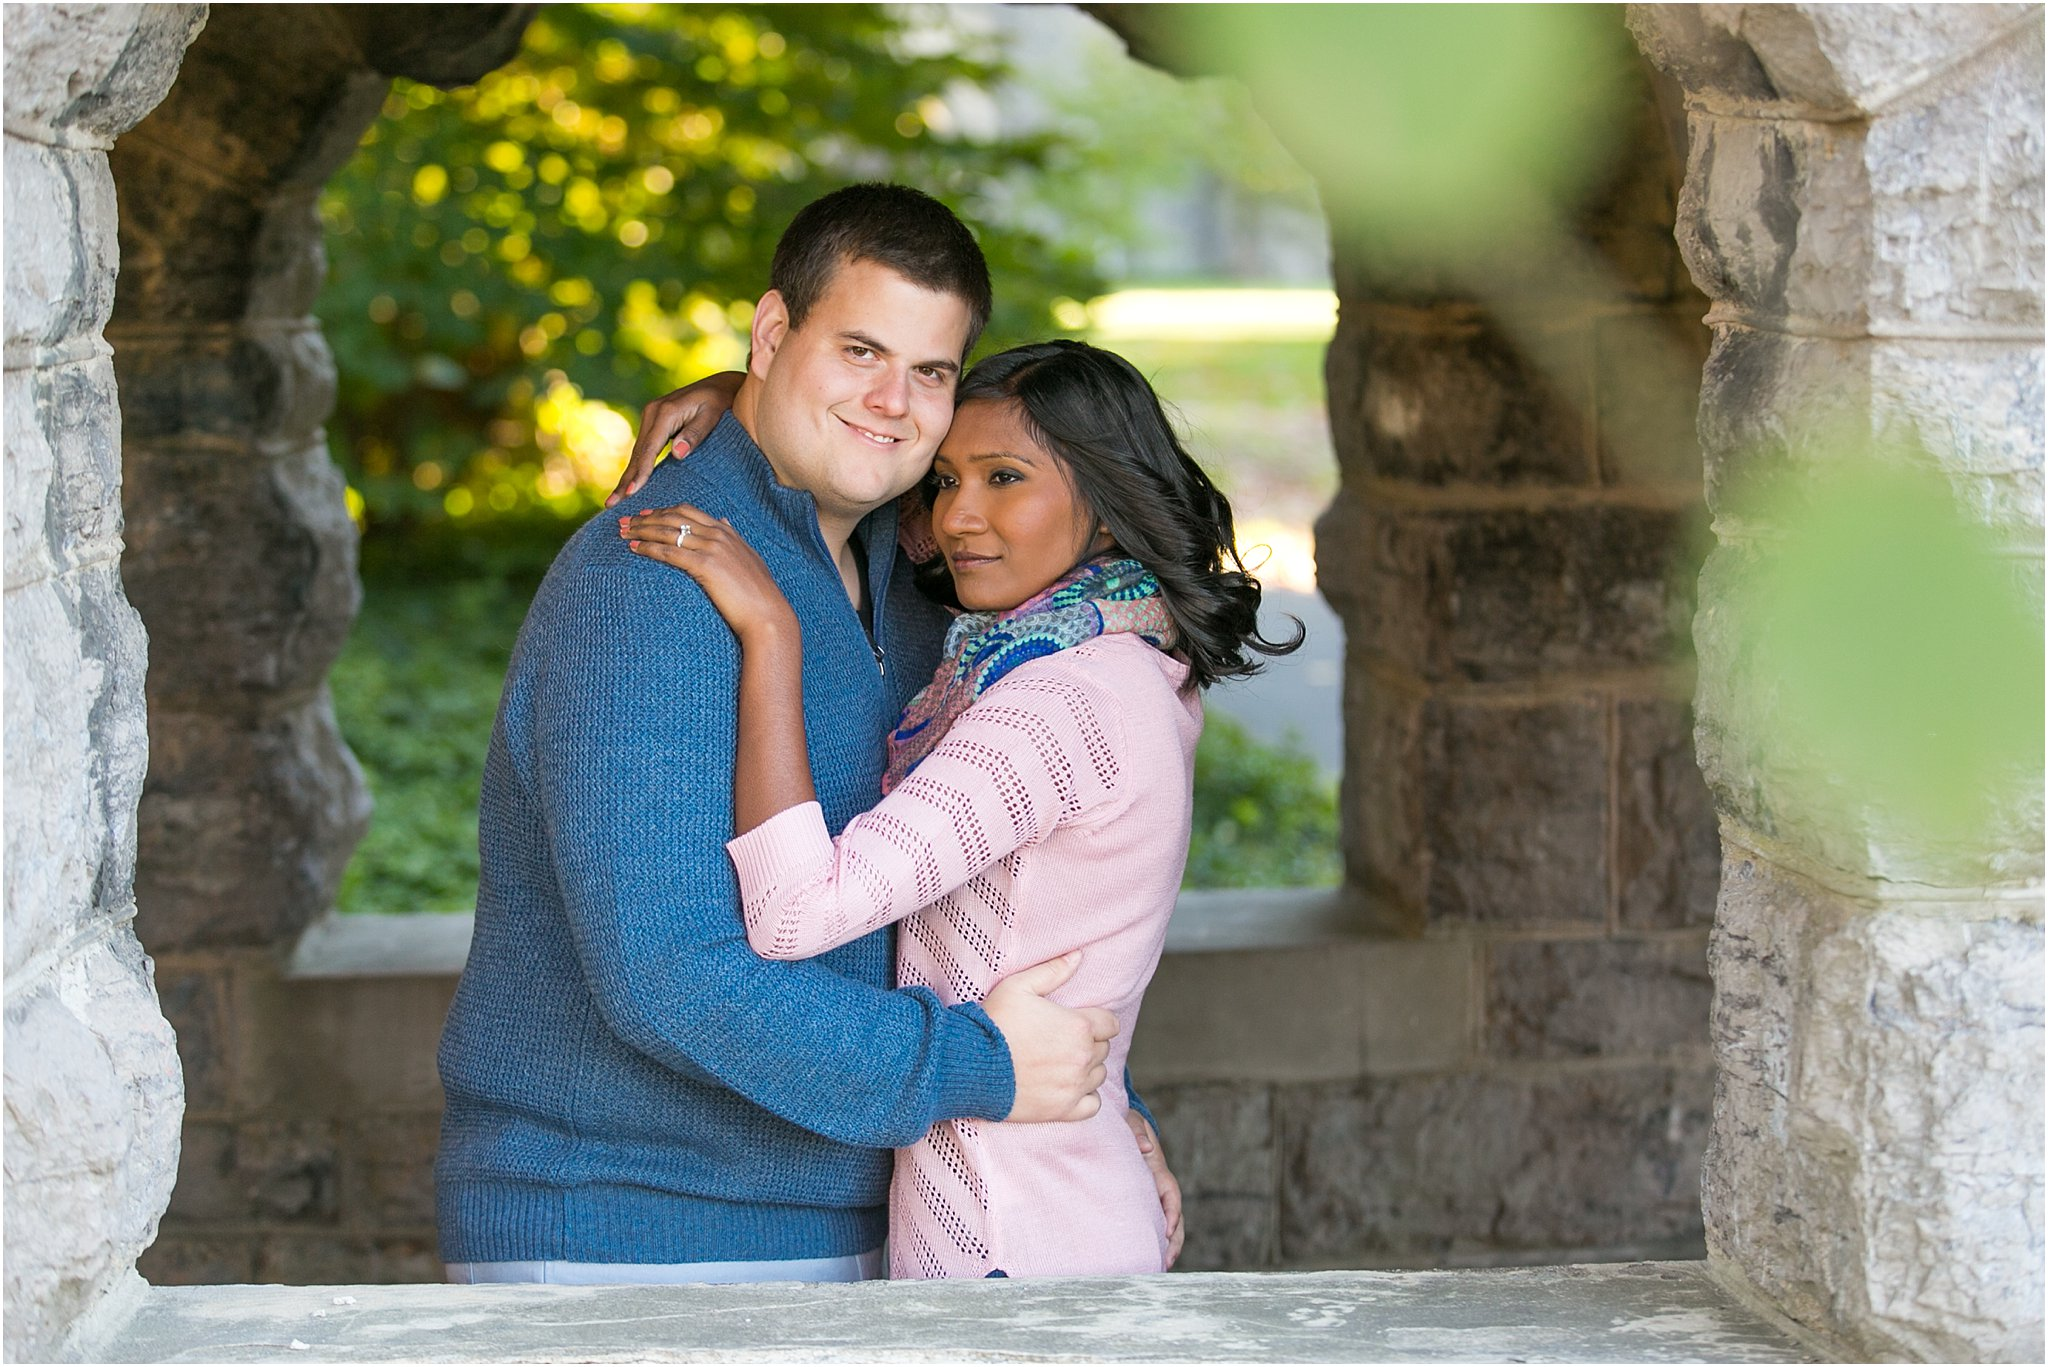 jessica_ryan_photography_engagement_virginia_tech_university_hokies_virginia_0590